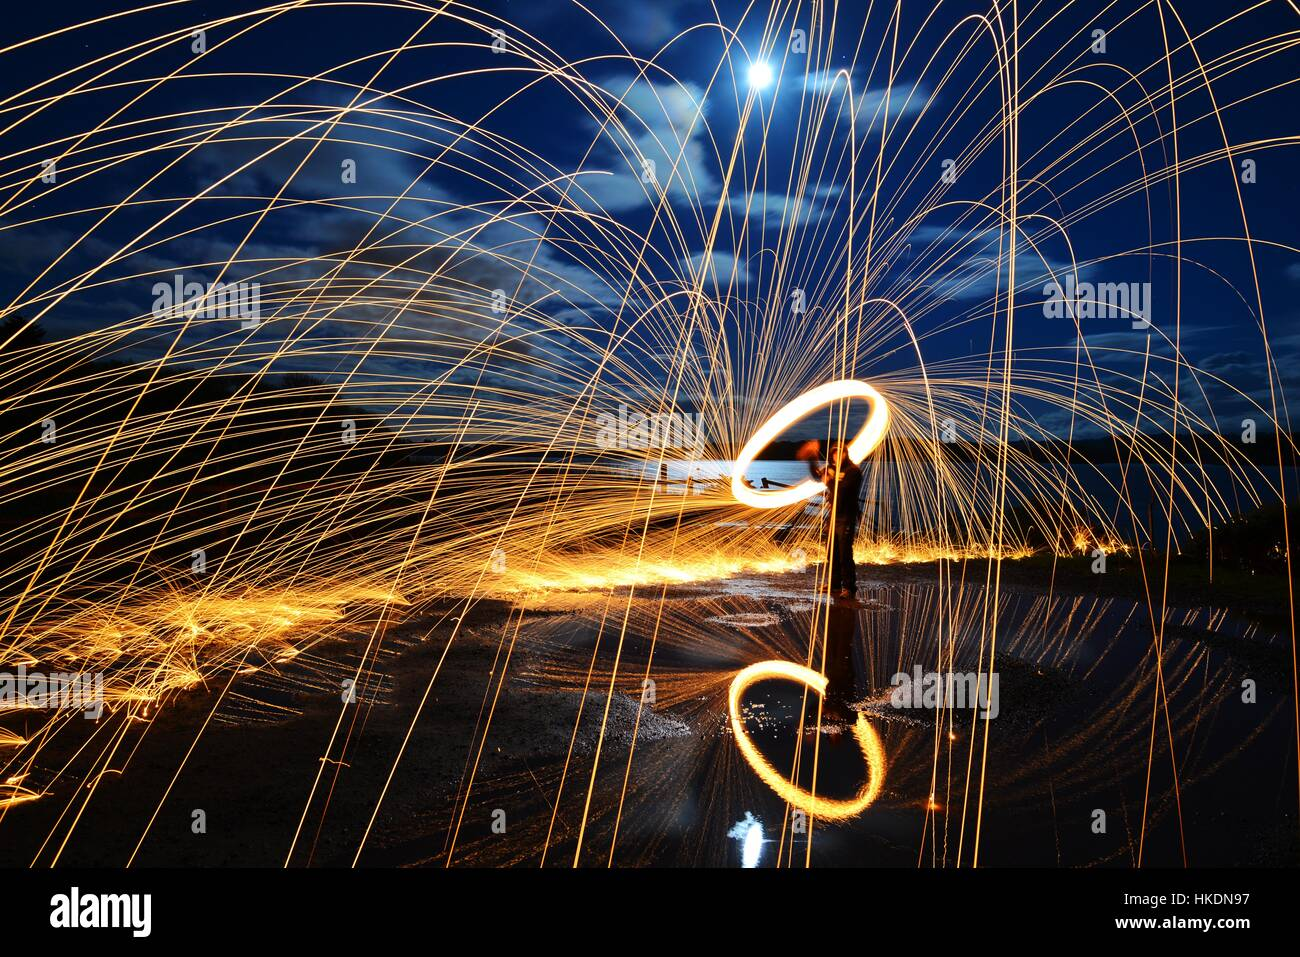 A long exposure of steel wool spinning on a with sparks reflected in a lake Stock Photo